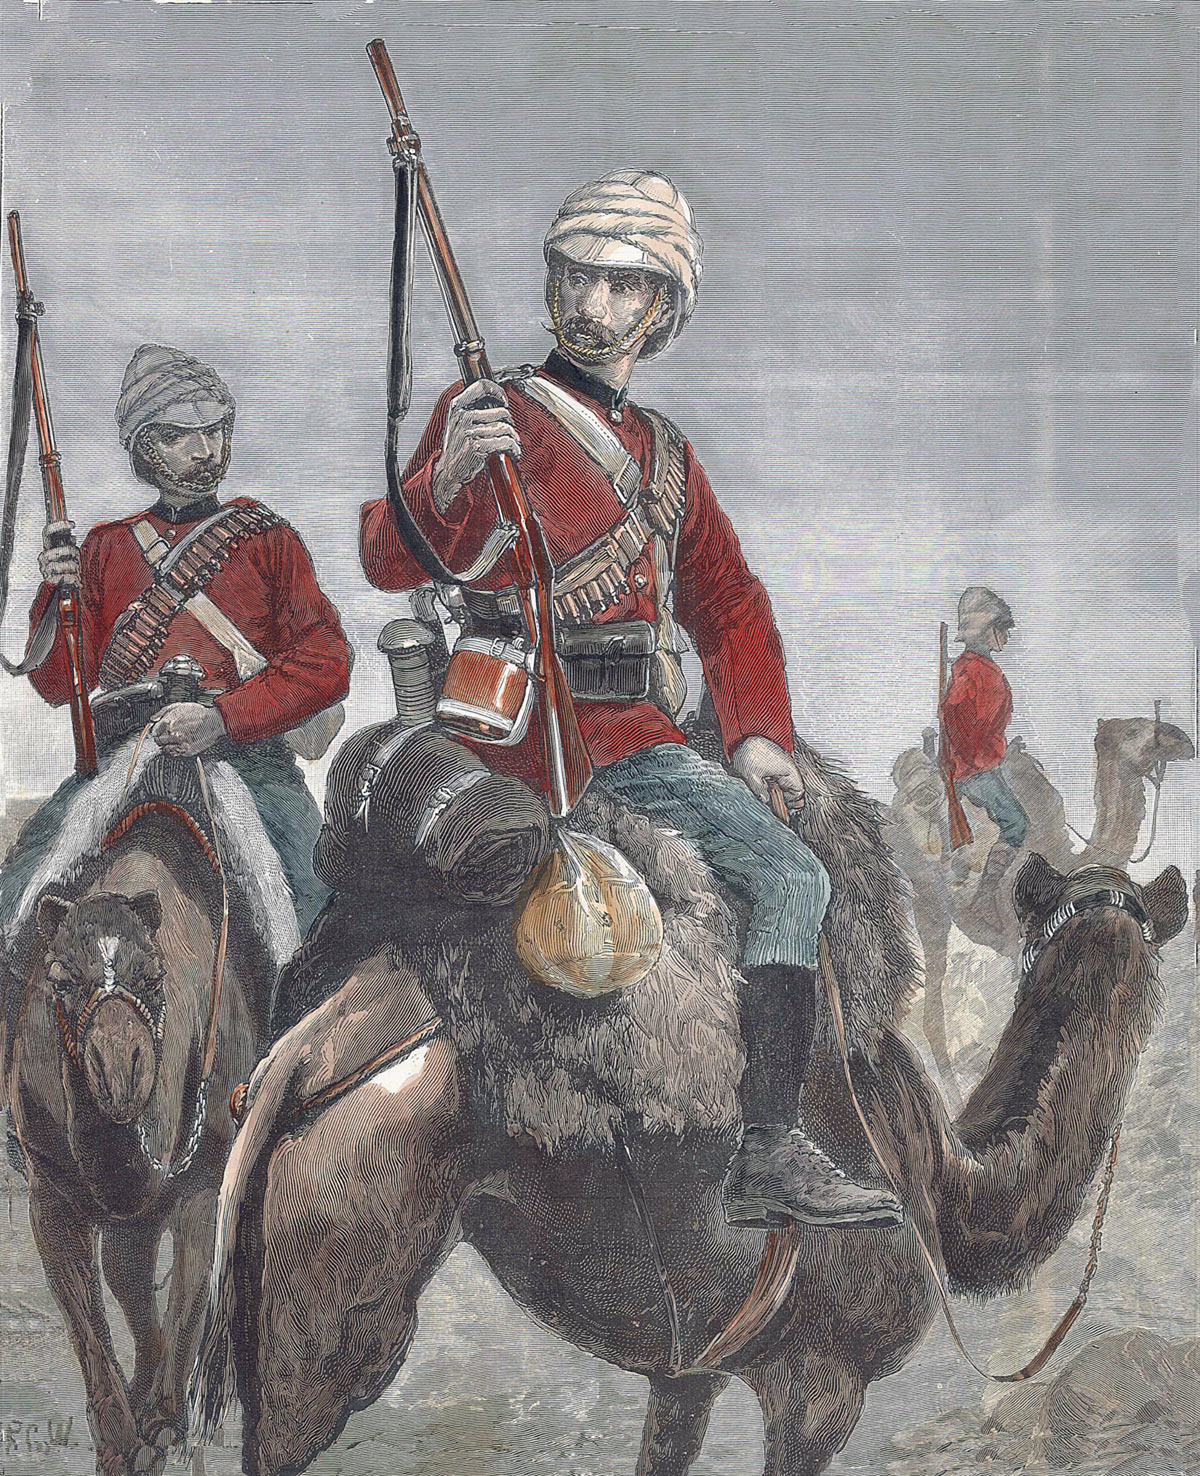 The British Camel Corps: Battle of Abu Klea on 17th January 1885 in the Sudanese War: picture by Richard Caton Woodville